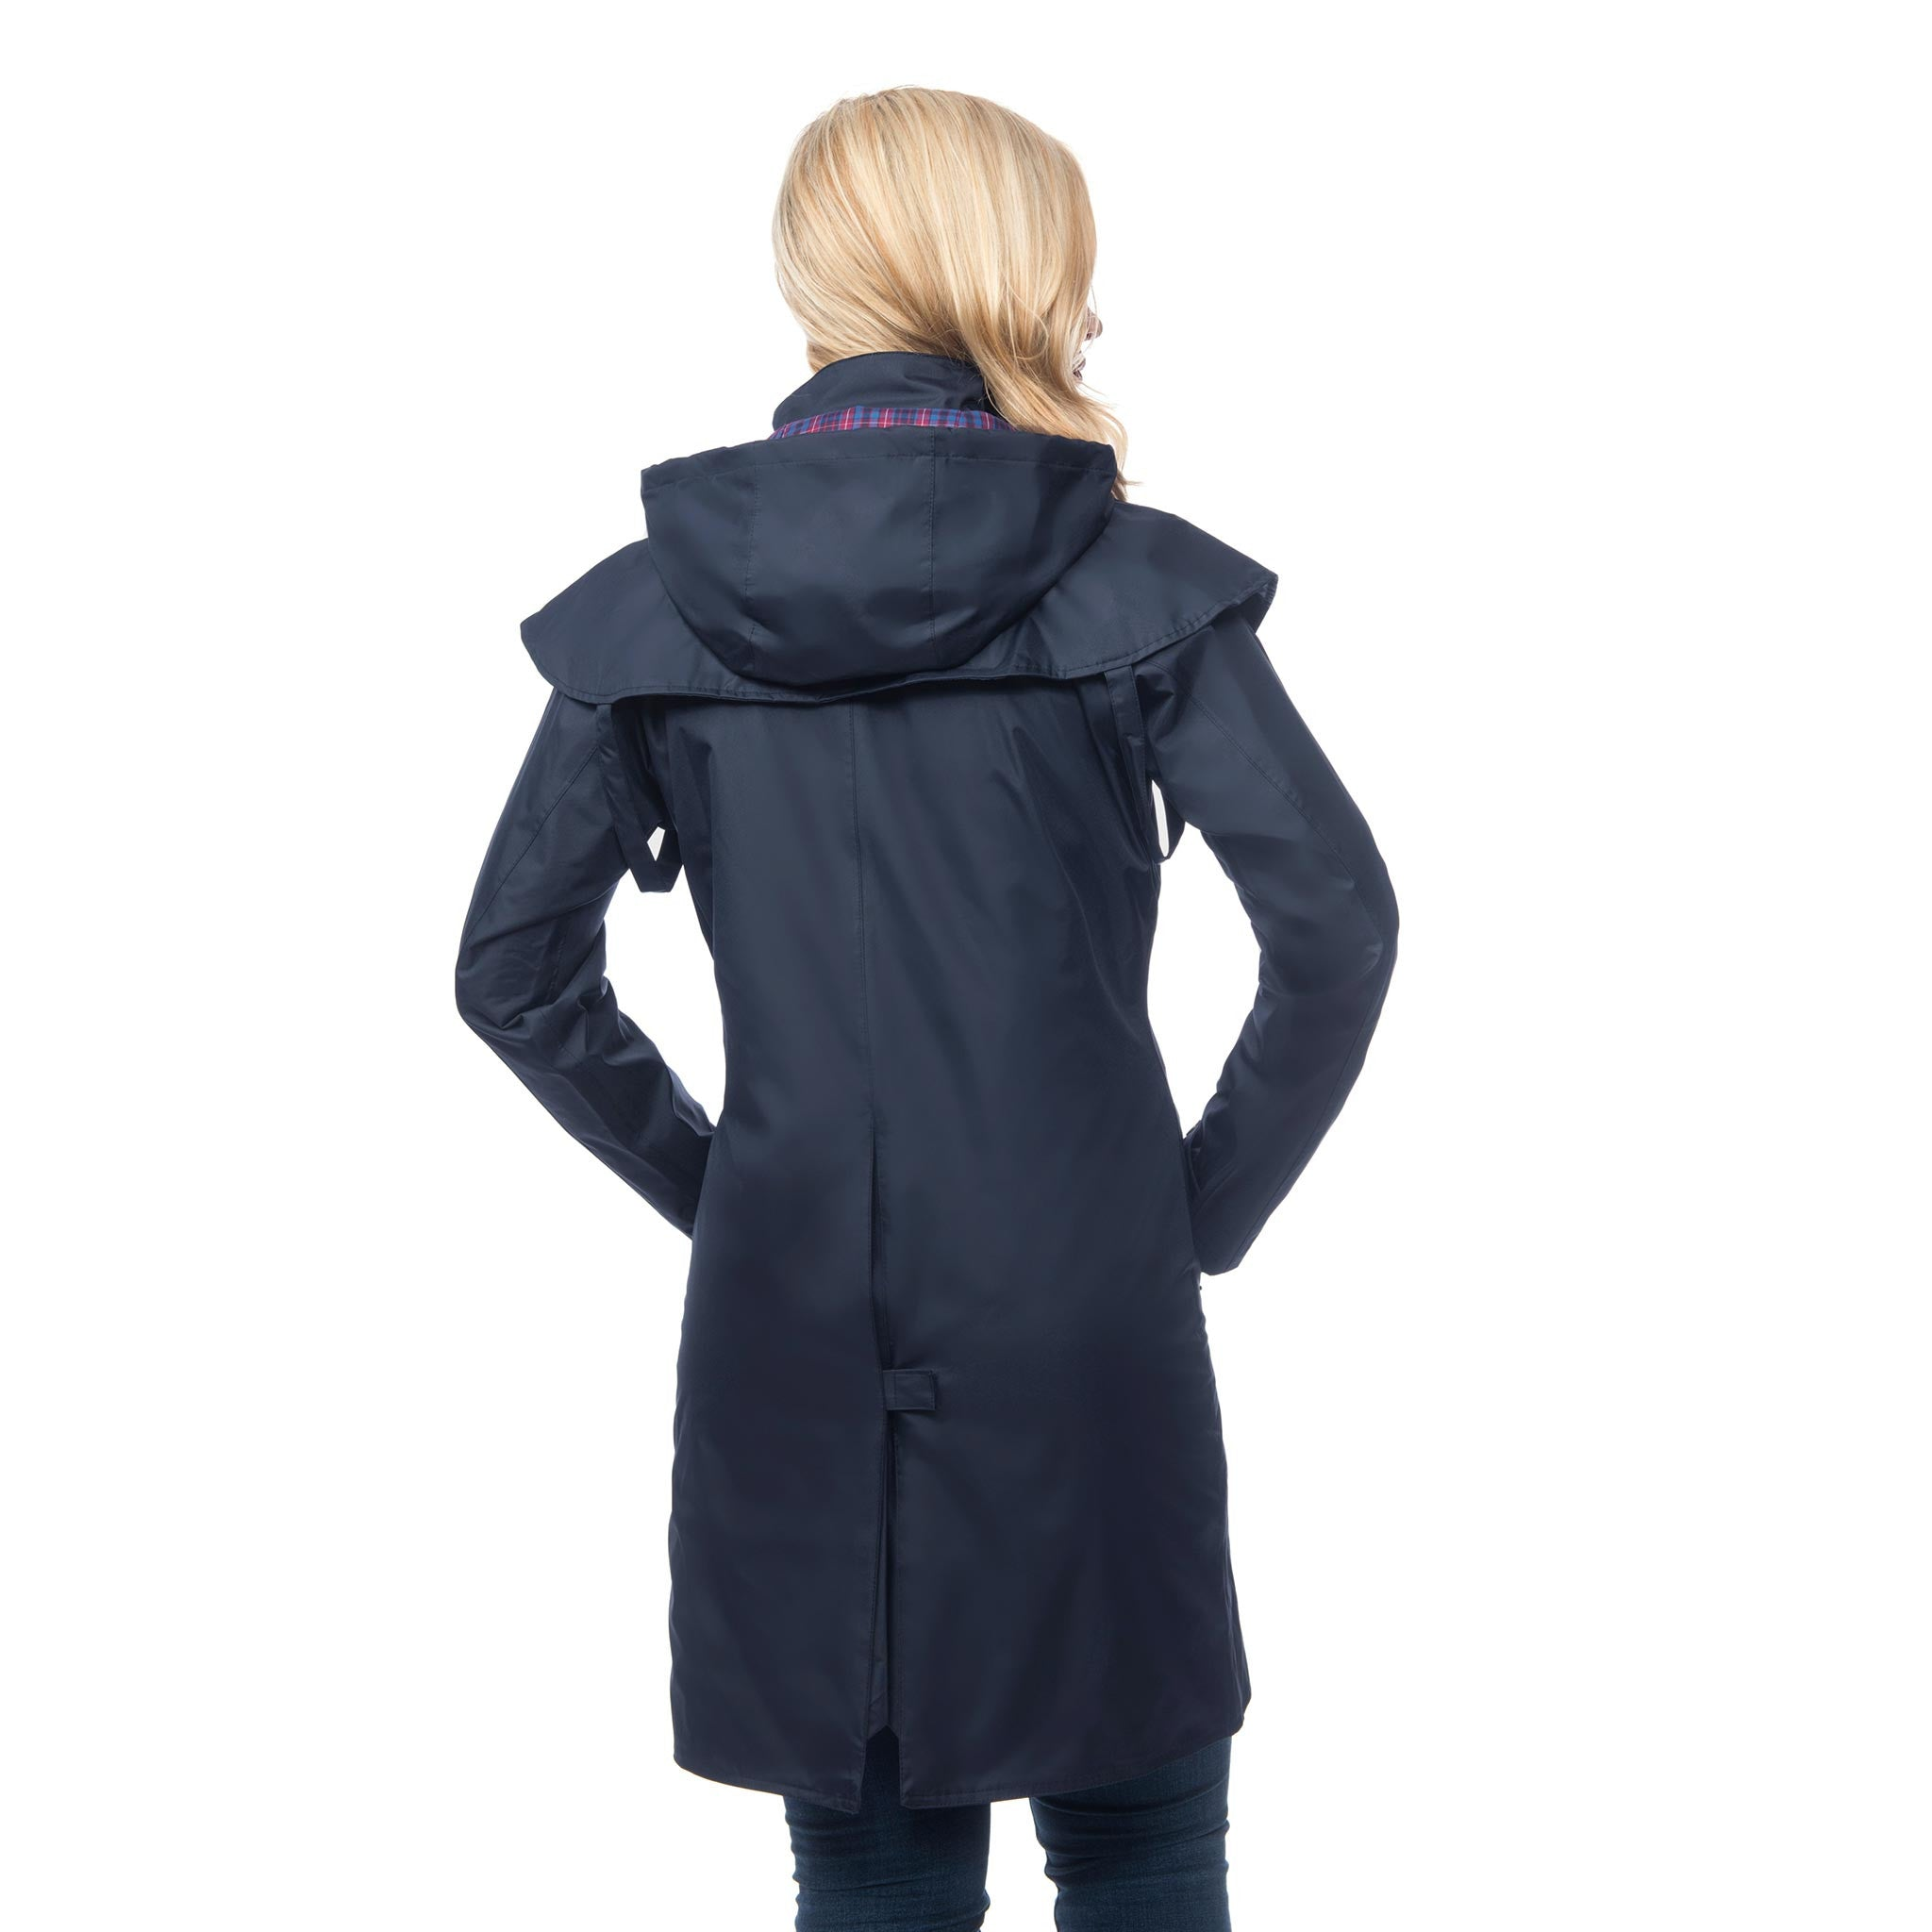 Lighthouse Womens Outrider 3/4 Length Waterproof Raincoat in Navy. Zipped & Buttoned. Rear view showing back vent.